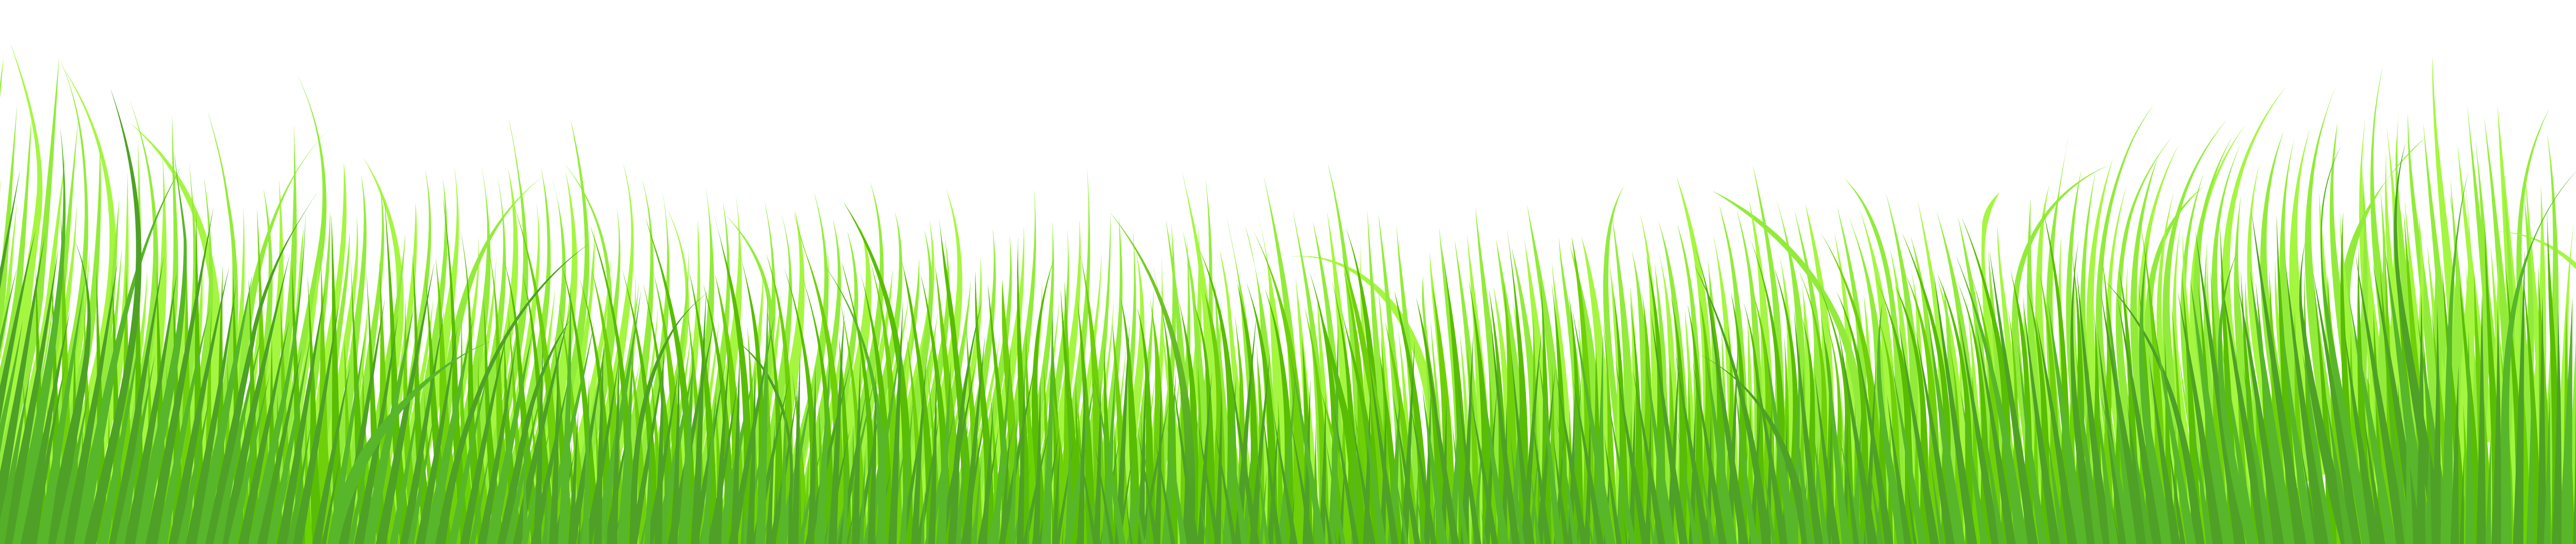 Grass clipart no background svg transparent stock Free Grass Clipart Transparent Background, Download Free Clip Art ... svg transparent stock